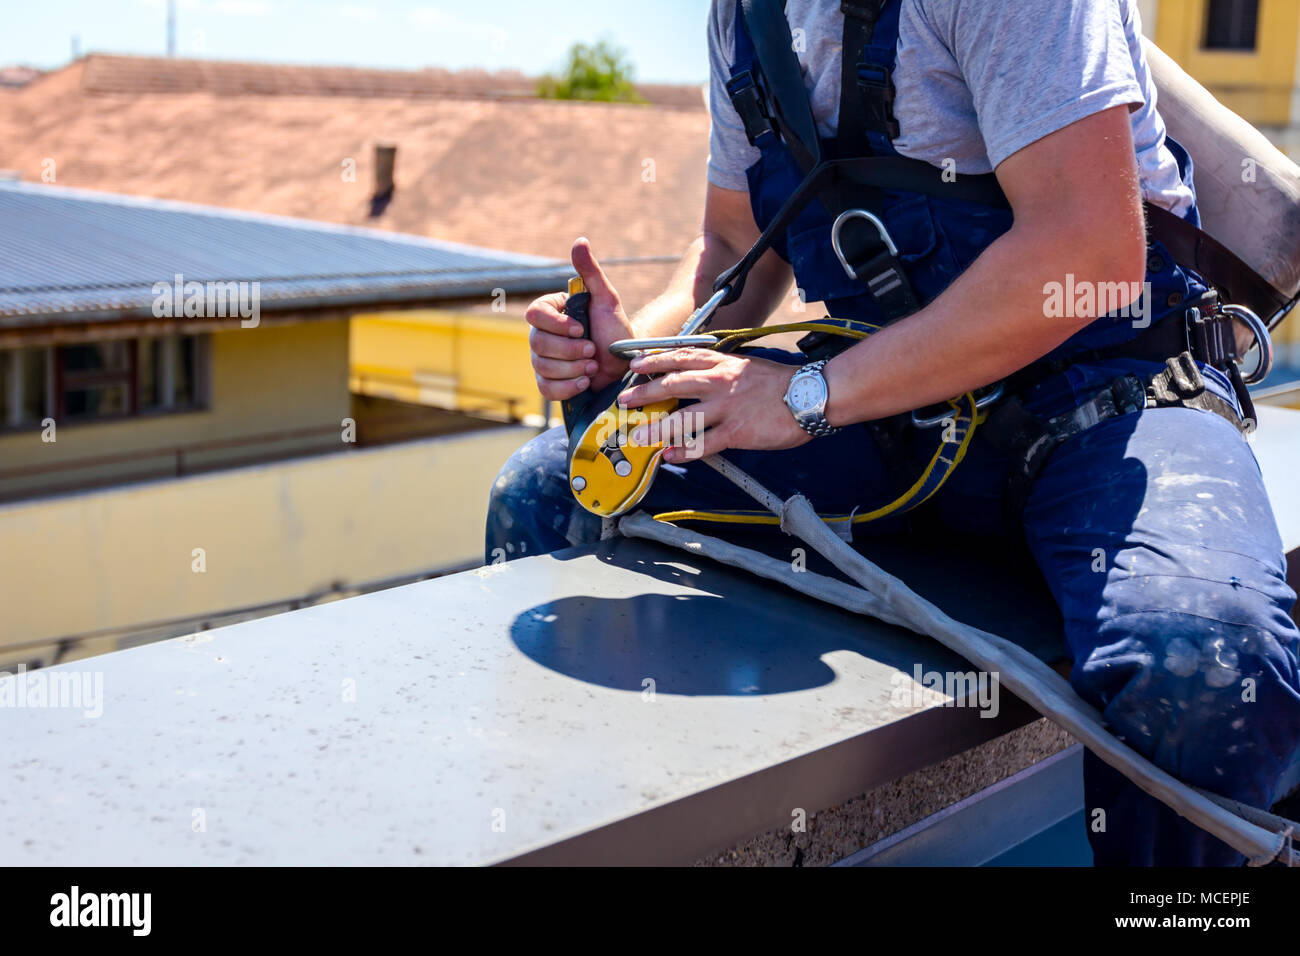 Industrial climber, alpinist, is adjusting climbing gear, preparing safety ropes. - Stock Image